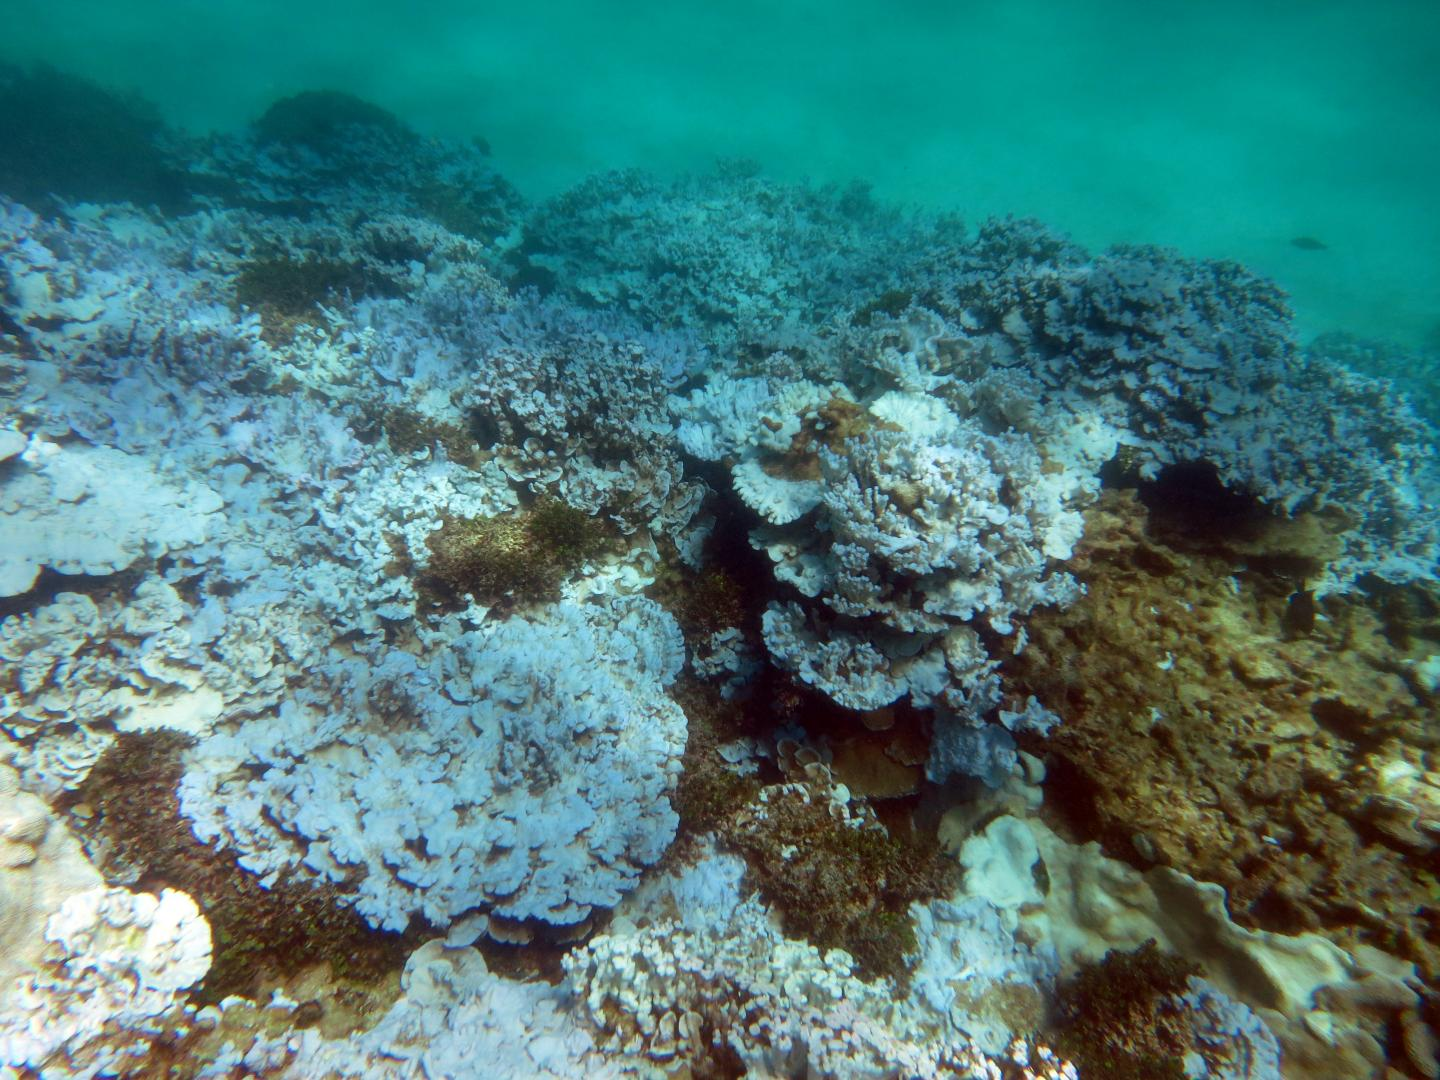 This is an extensive stand of severely bleached coral at Lisianski Island in Papahanaumokuakea Marine National Monument (Hawaii) documented during an August 2014 NOAA research mission. Credit: NOAA